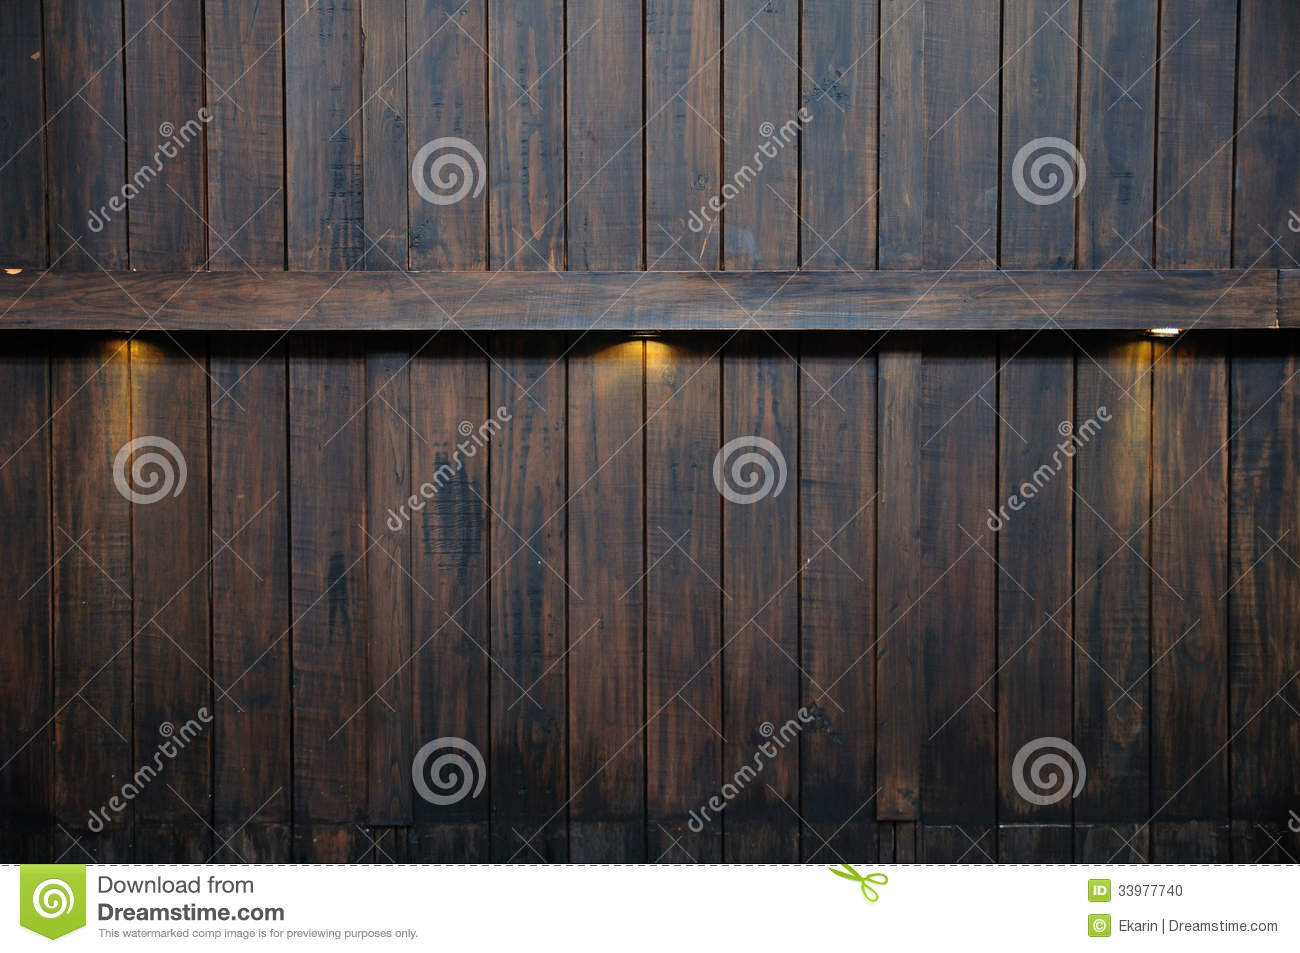 Old Wooden Wall Lights : Ray Light On Antique Wooden Wall Stock Photo - Image: 33977740